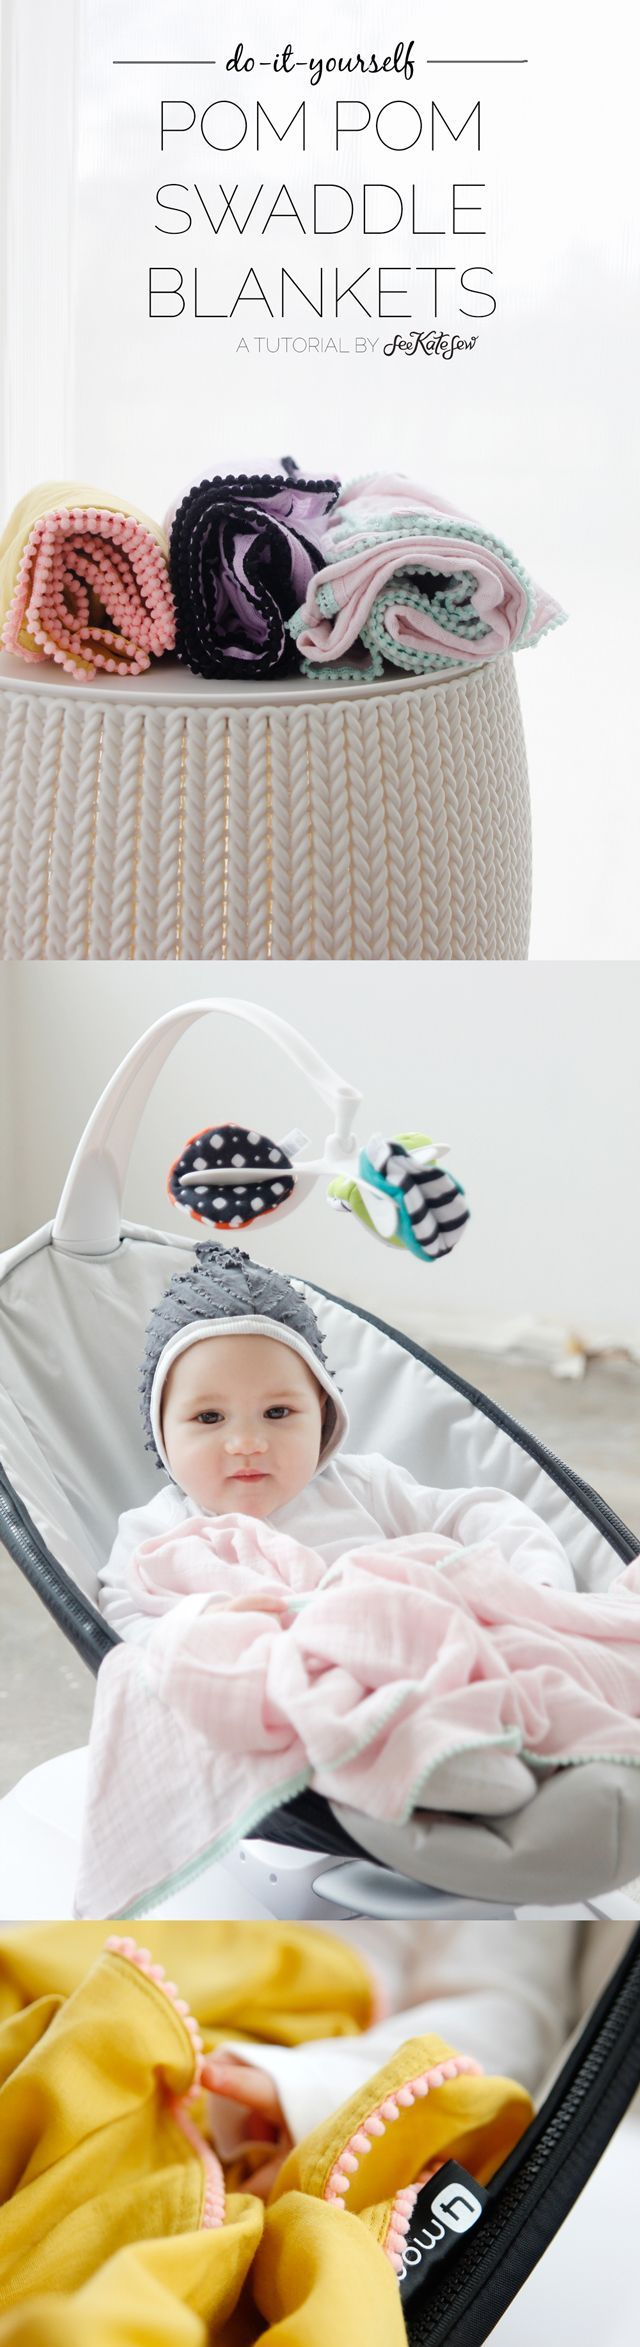 9598 best diy sewing projects images on pinterest sewing diy pom pom swaddle blankets sewing projects solutioingenieria Images